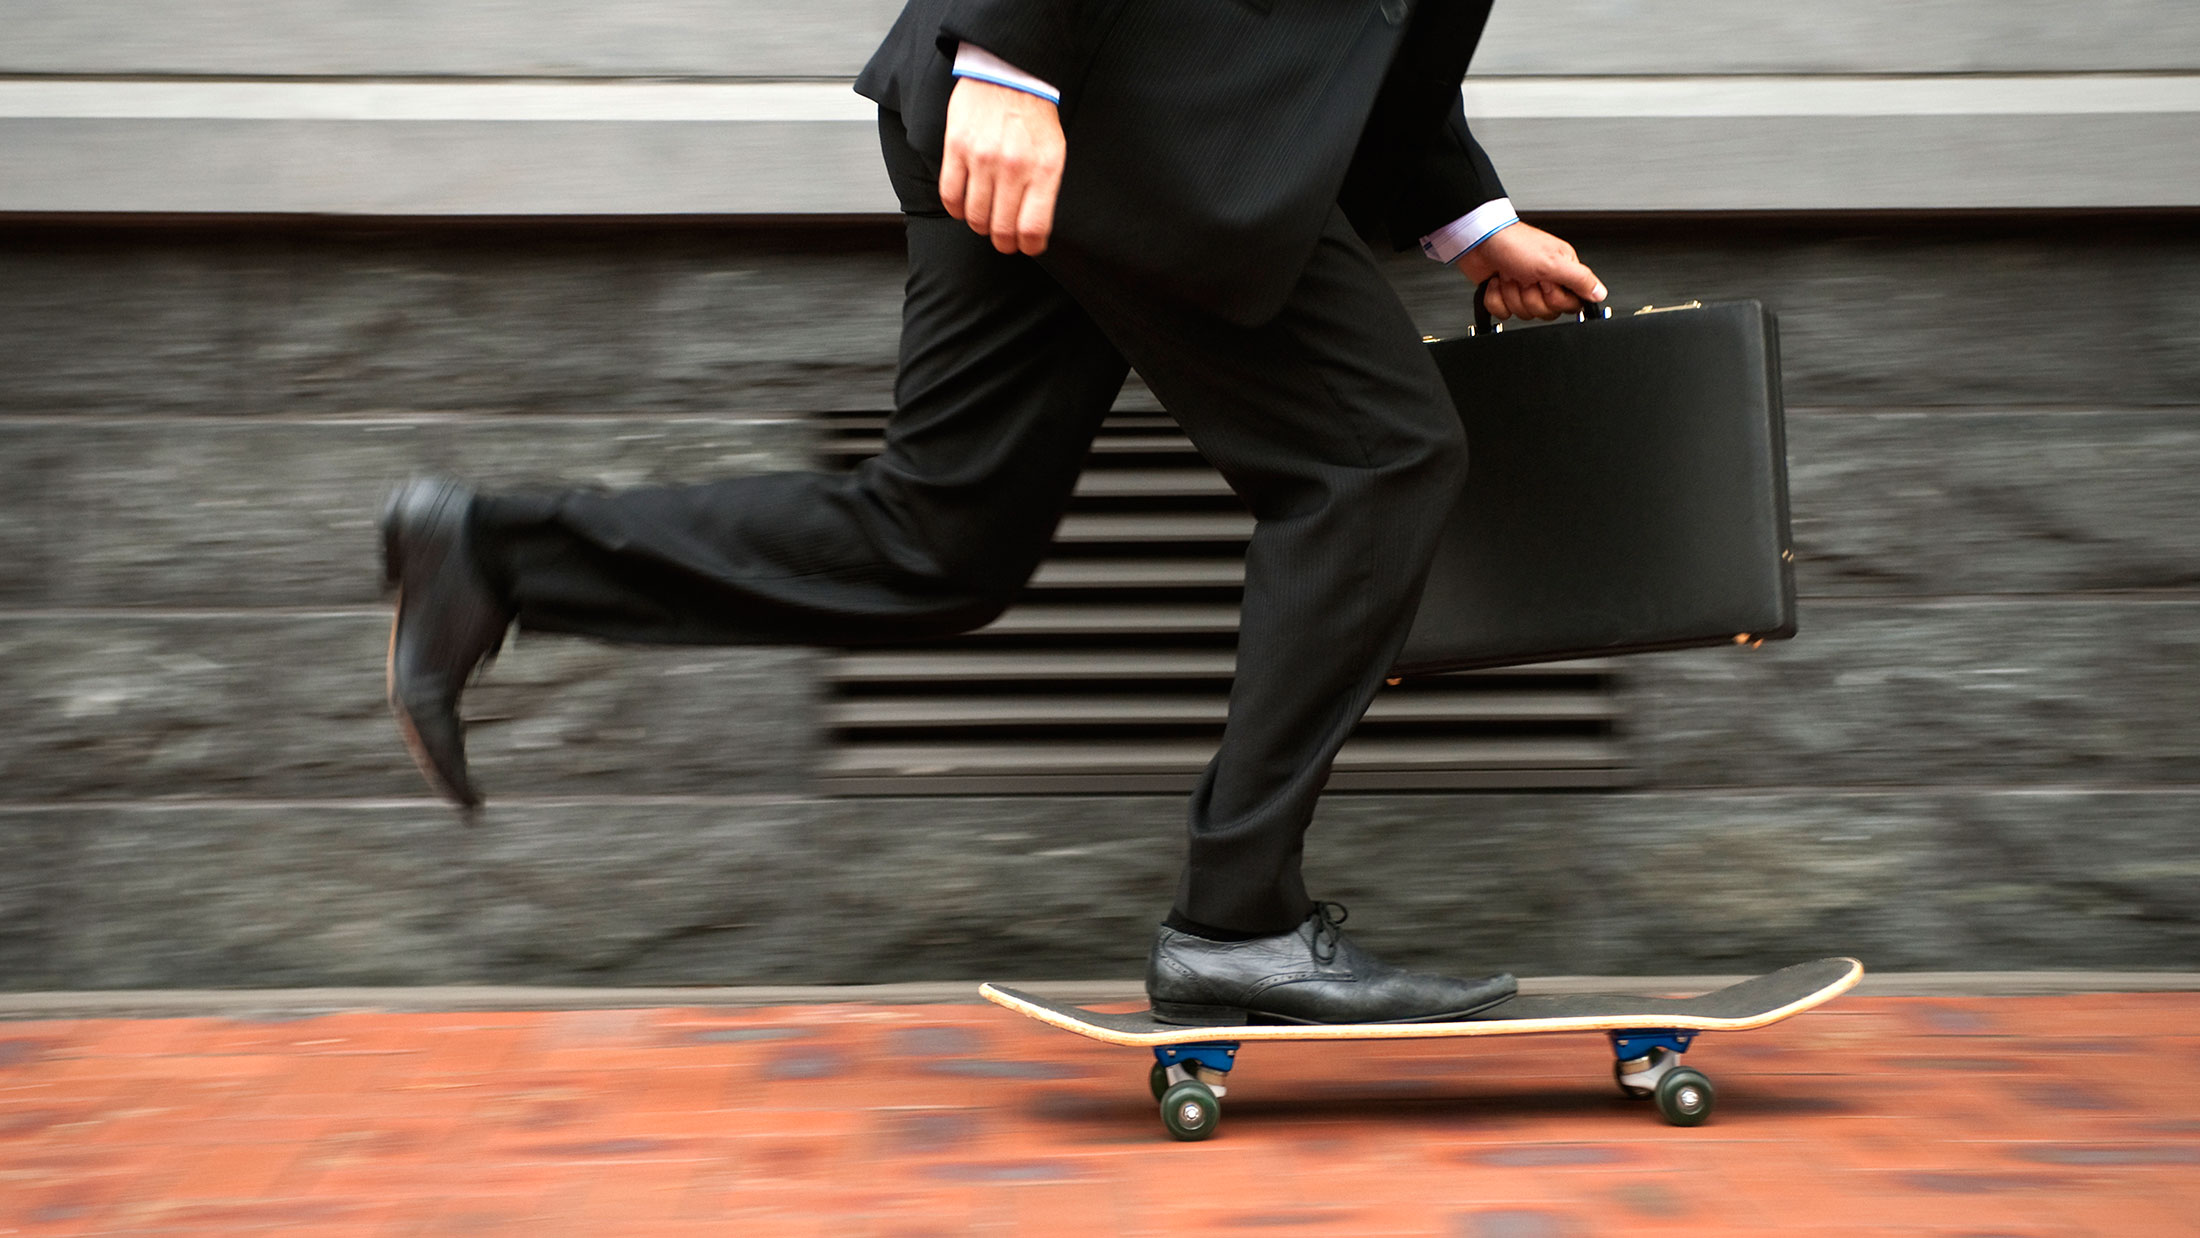 Economists Offer These 10 Career Tips for Today's Graduates